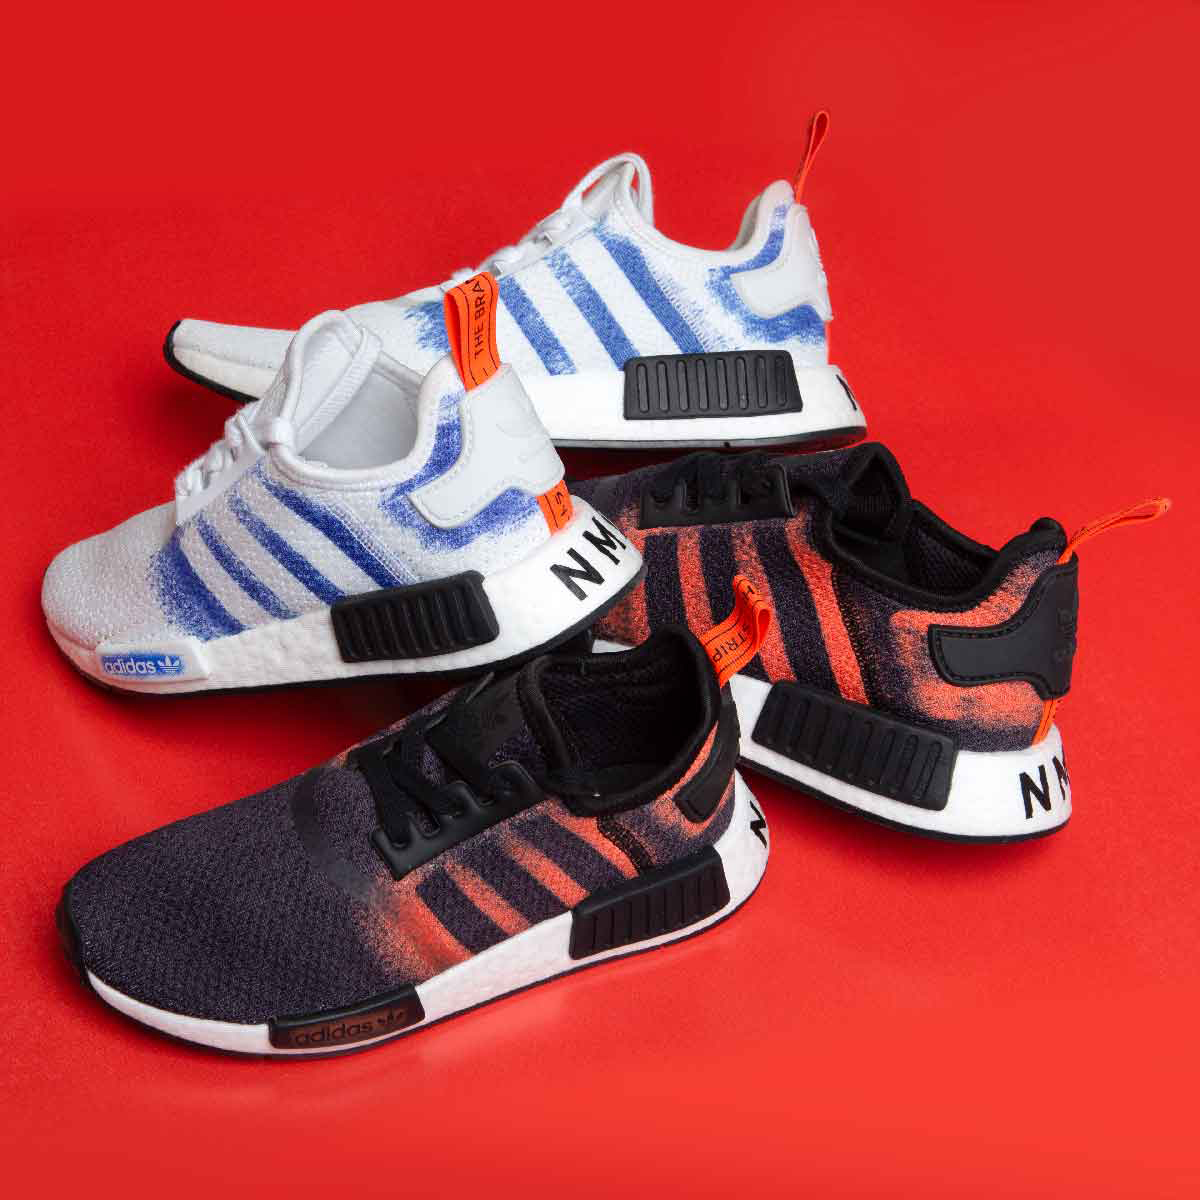 adidas NMD Stencil Sneaker Pack |